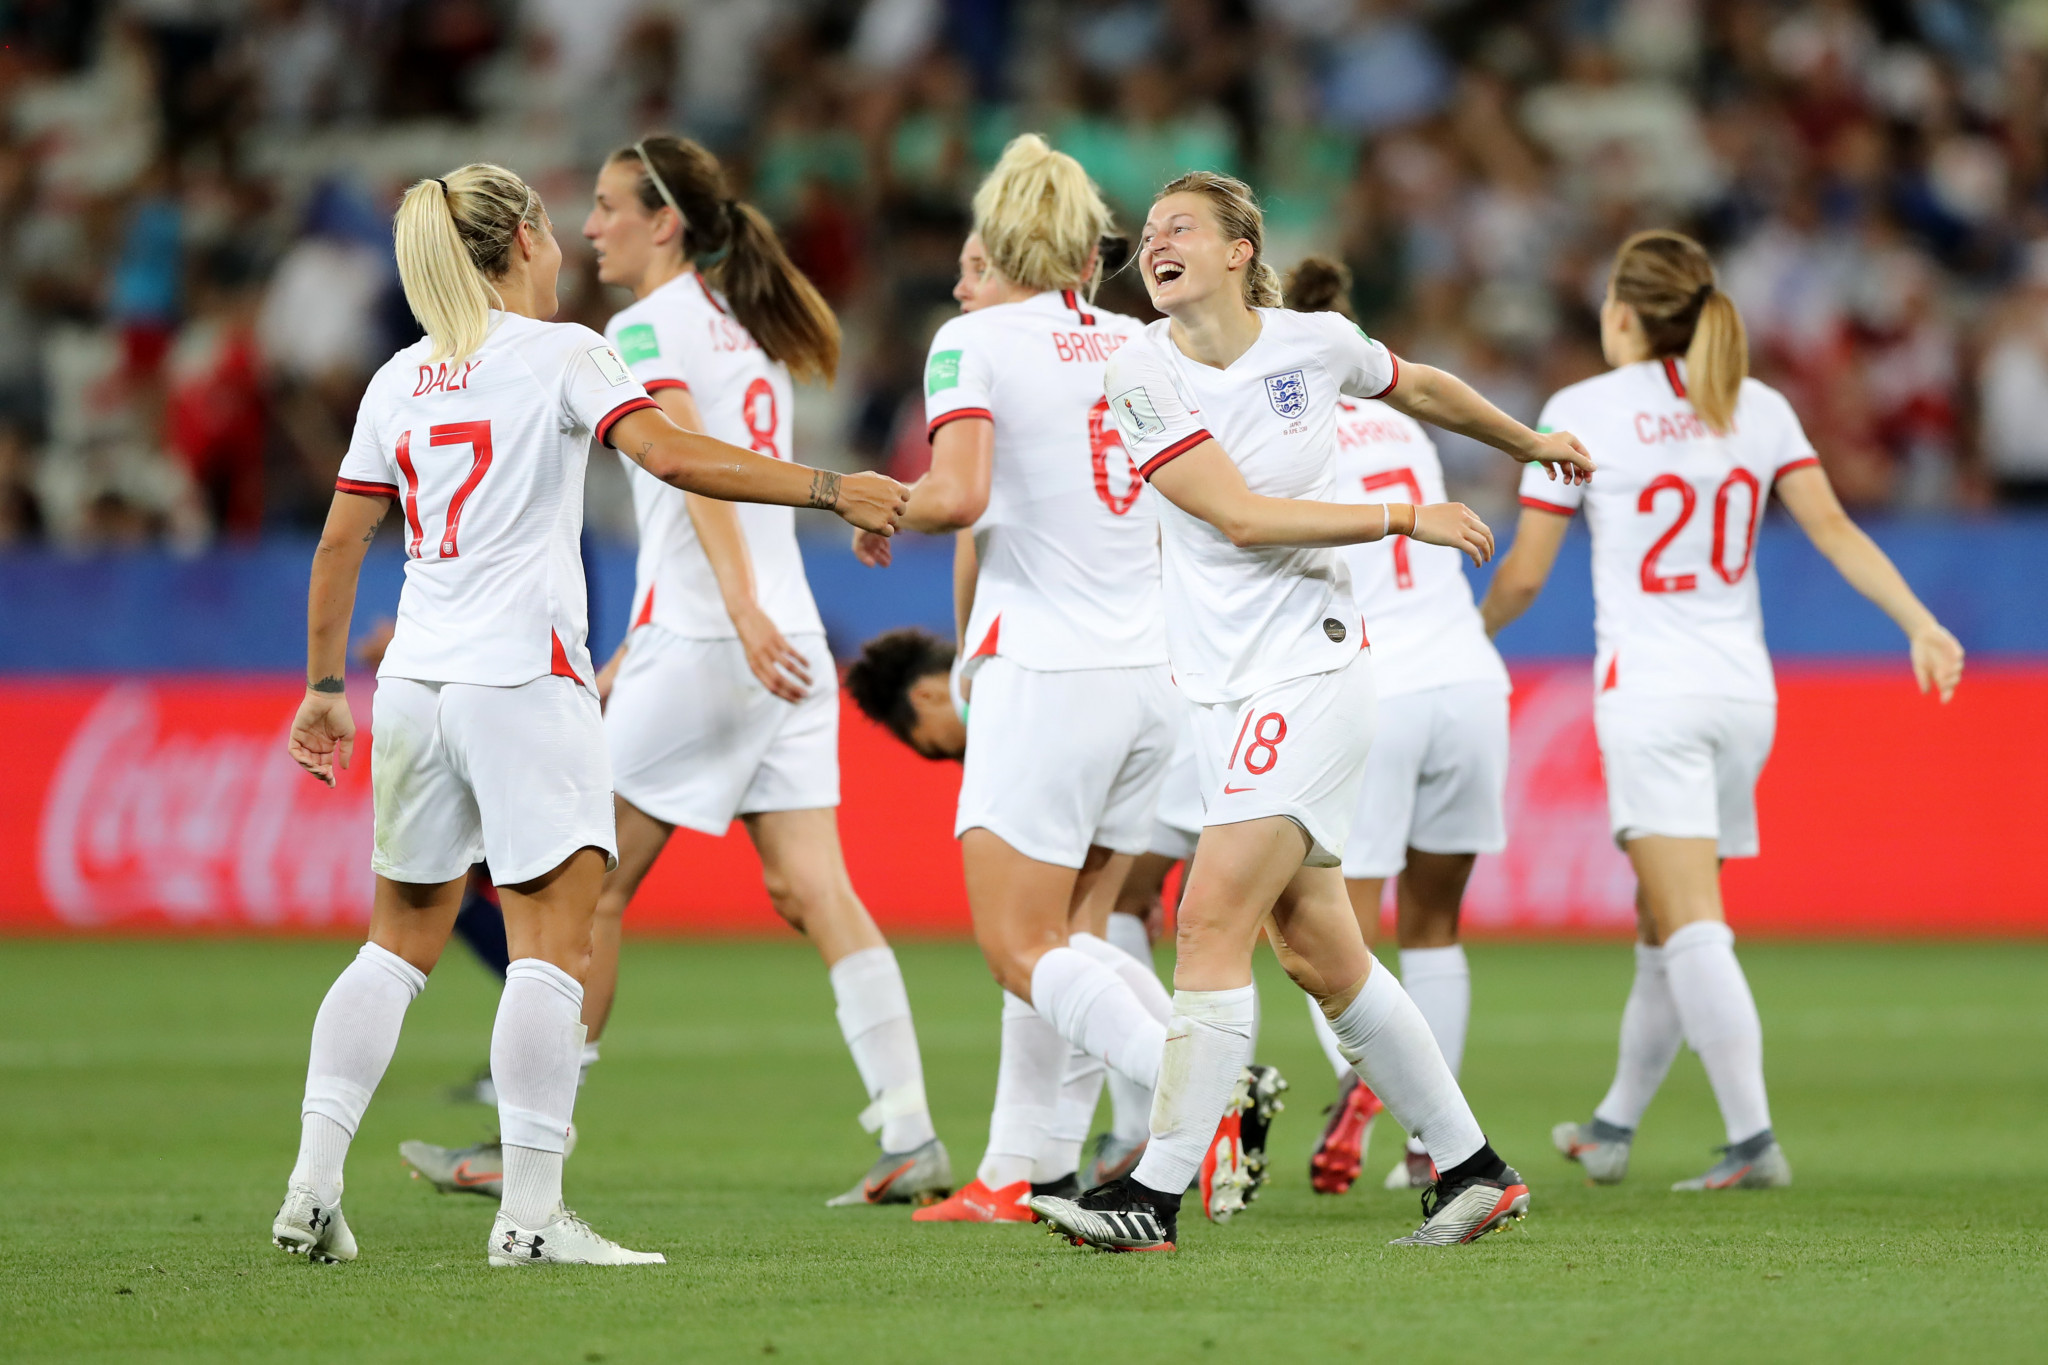 England's win meant they qualified for the round-of-16 as the top team in Group D ©Getty Images